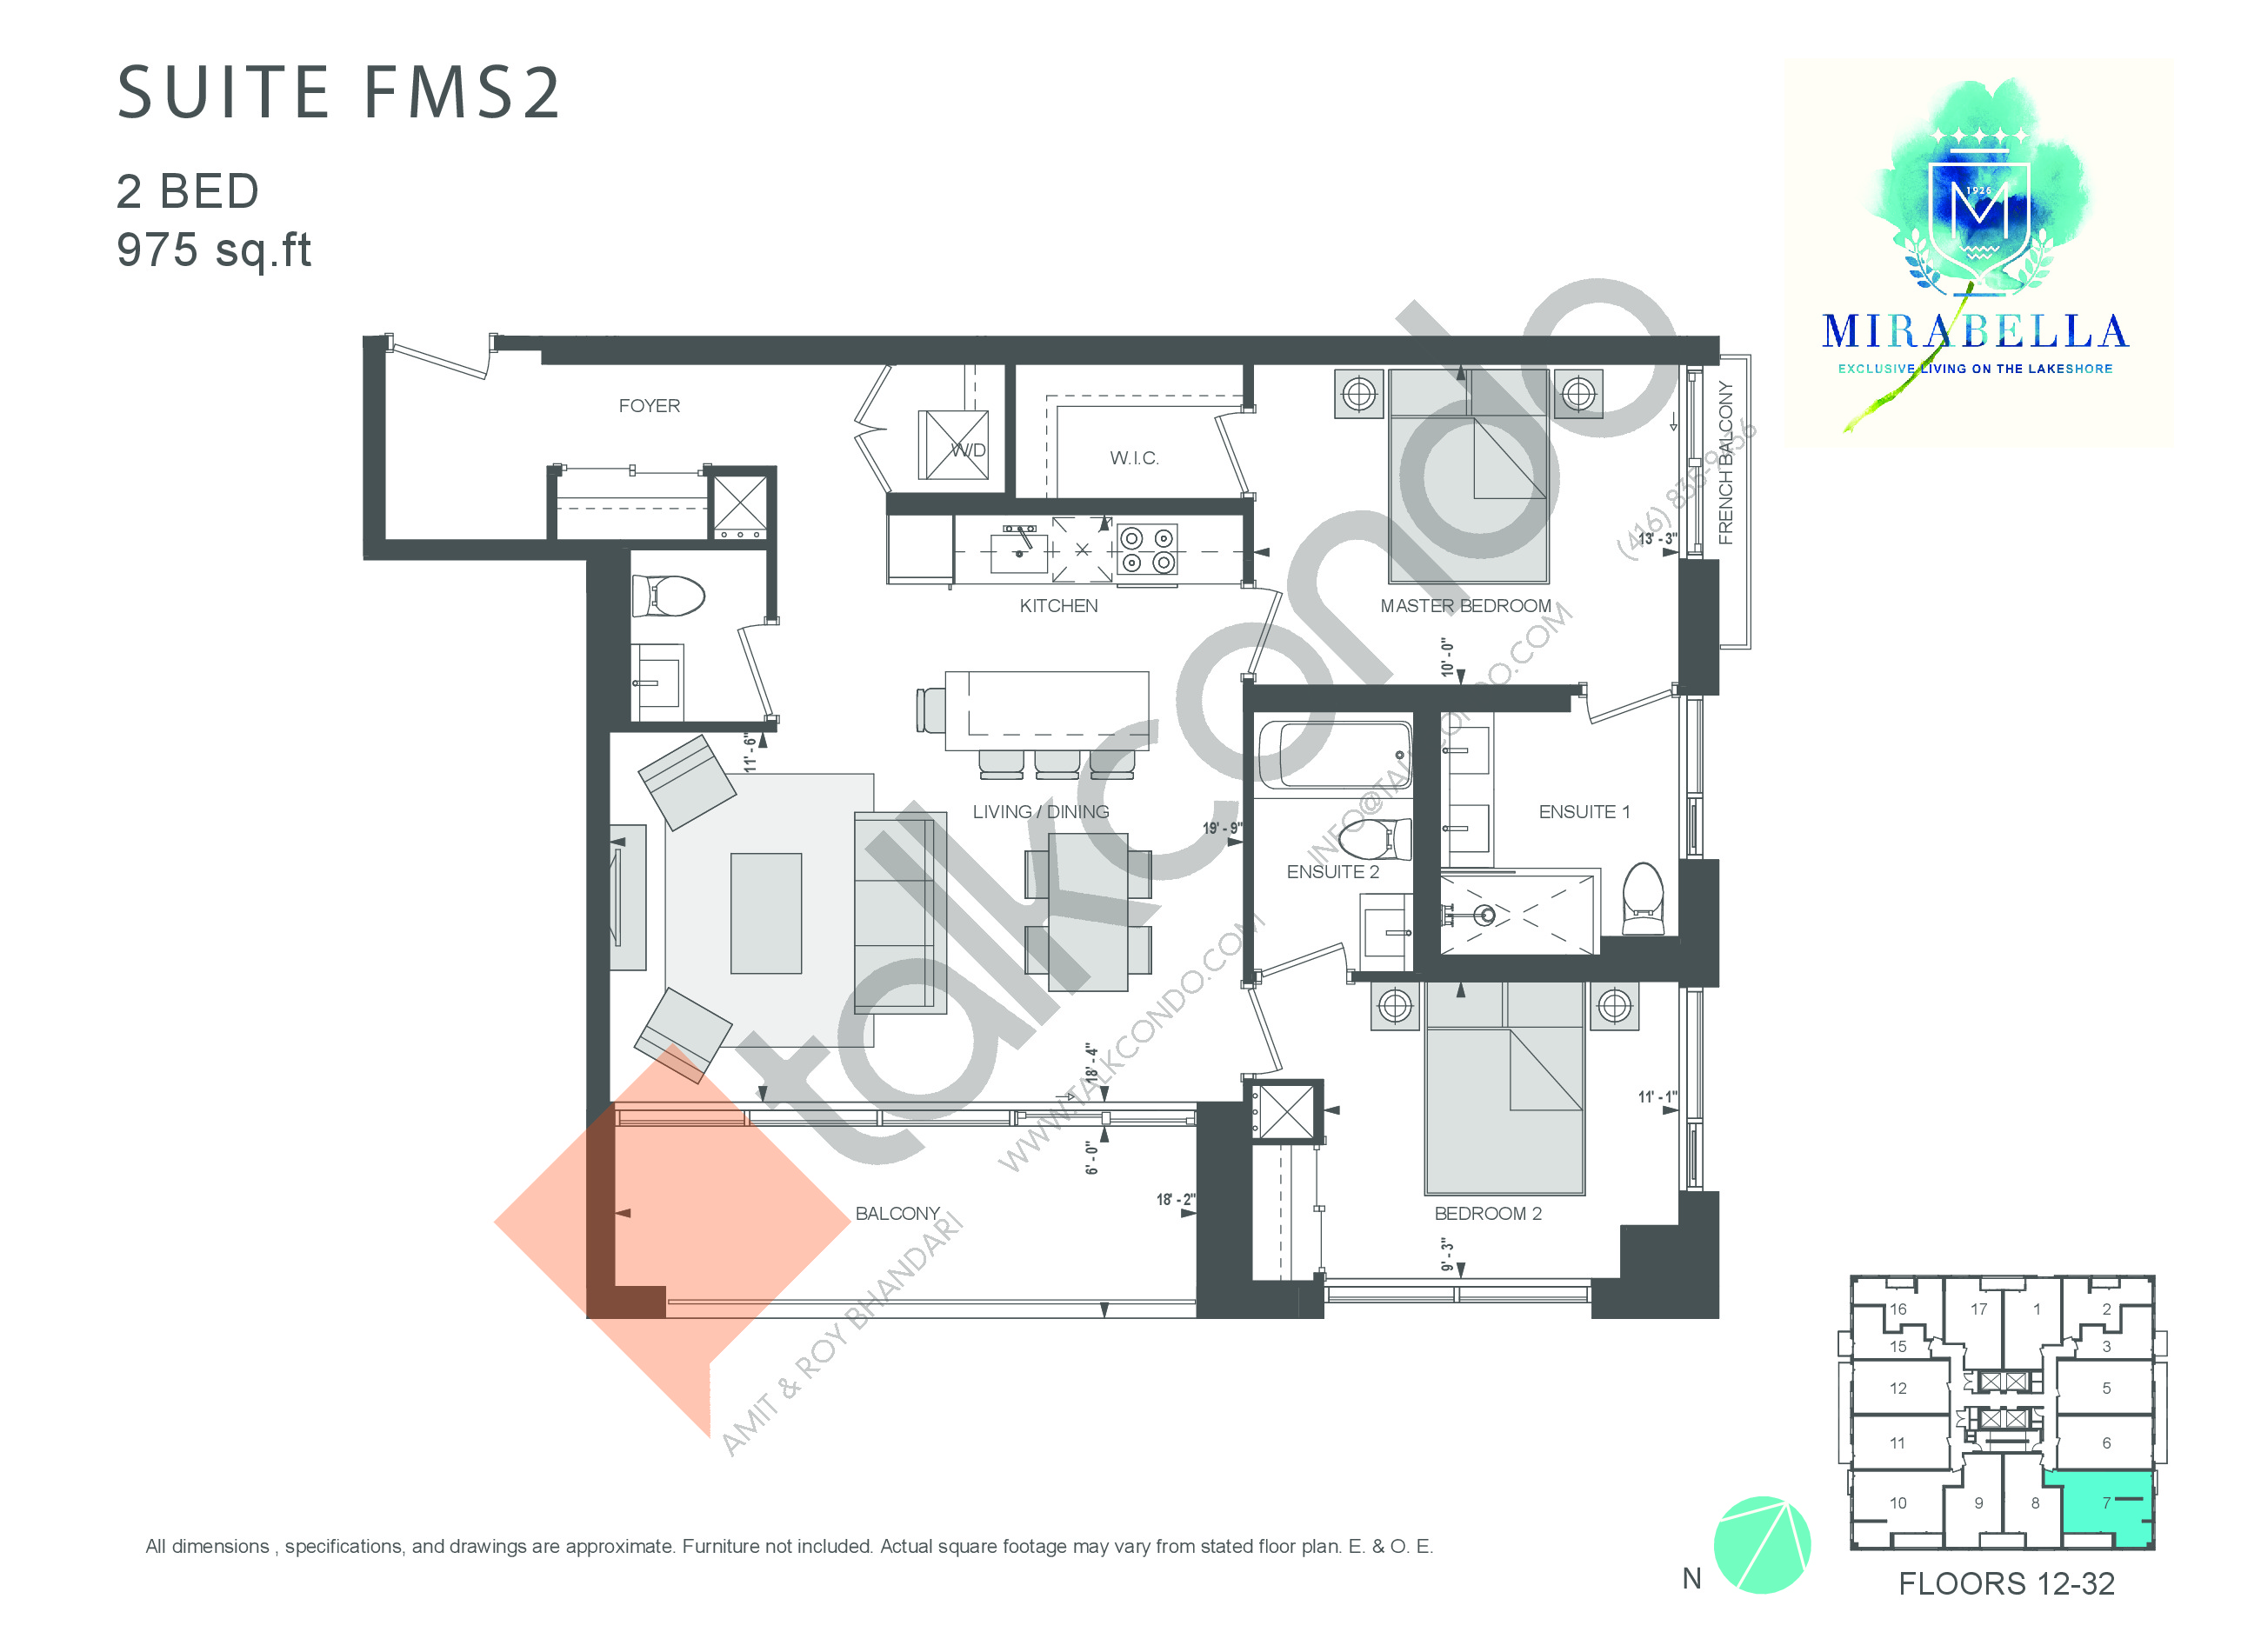 Suite FMS2 Floor Plan at Mirabella Luxury Condos East Tower - 975 sq.ft